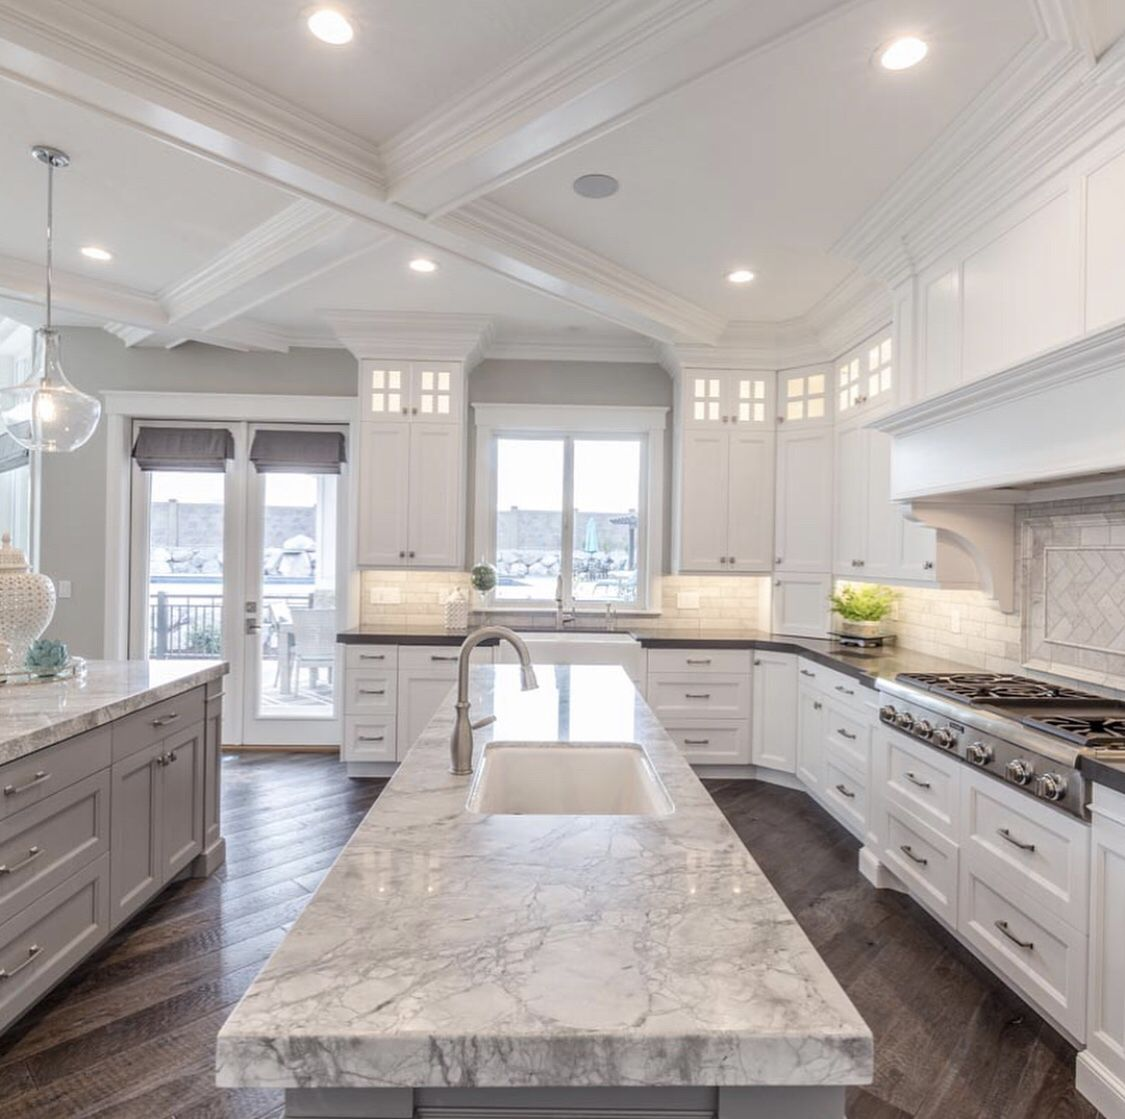 Gorgeous Marble Kitchen Countertops Home Decor Kitchen House Rooms Dream Home Design